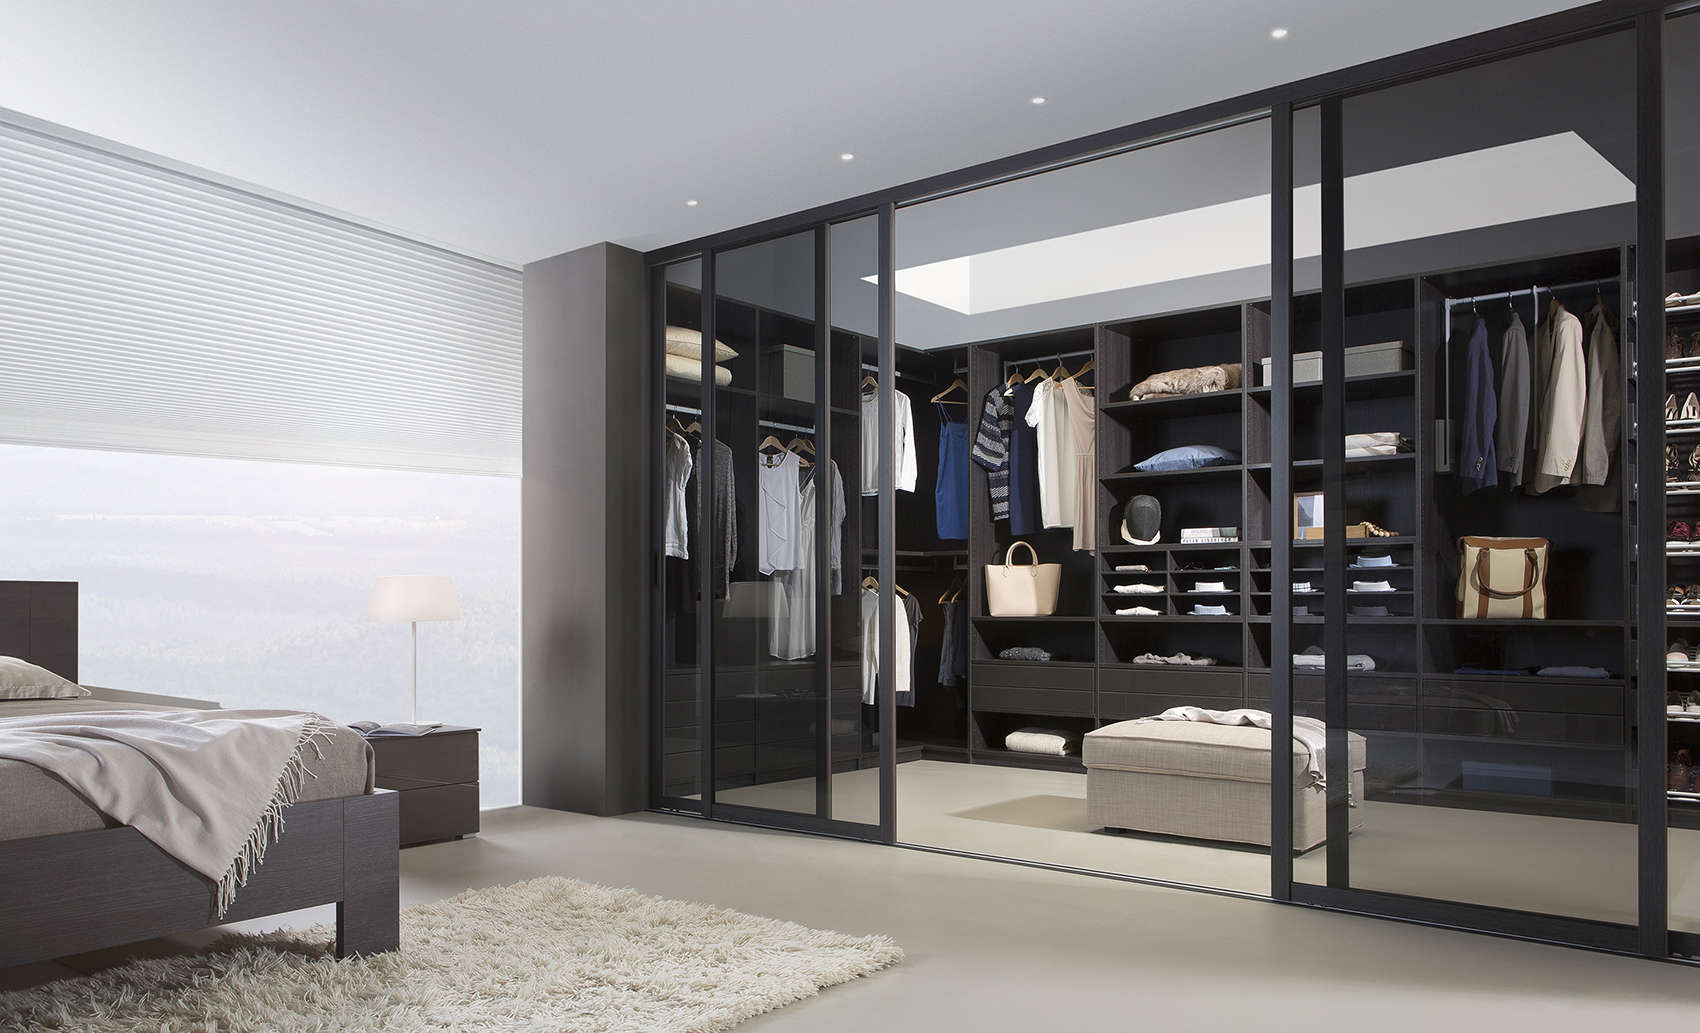 dressings en kasten op maat alkeba. Black Bedroom Furniture Sets. Home Design Ideas